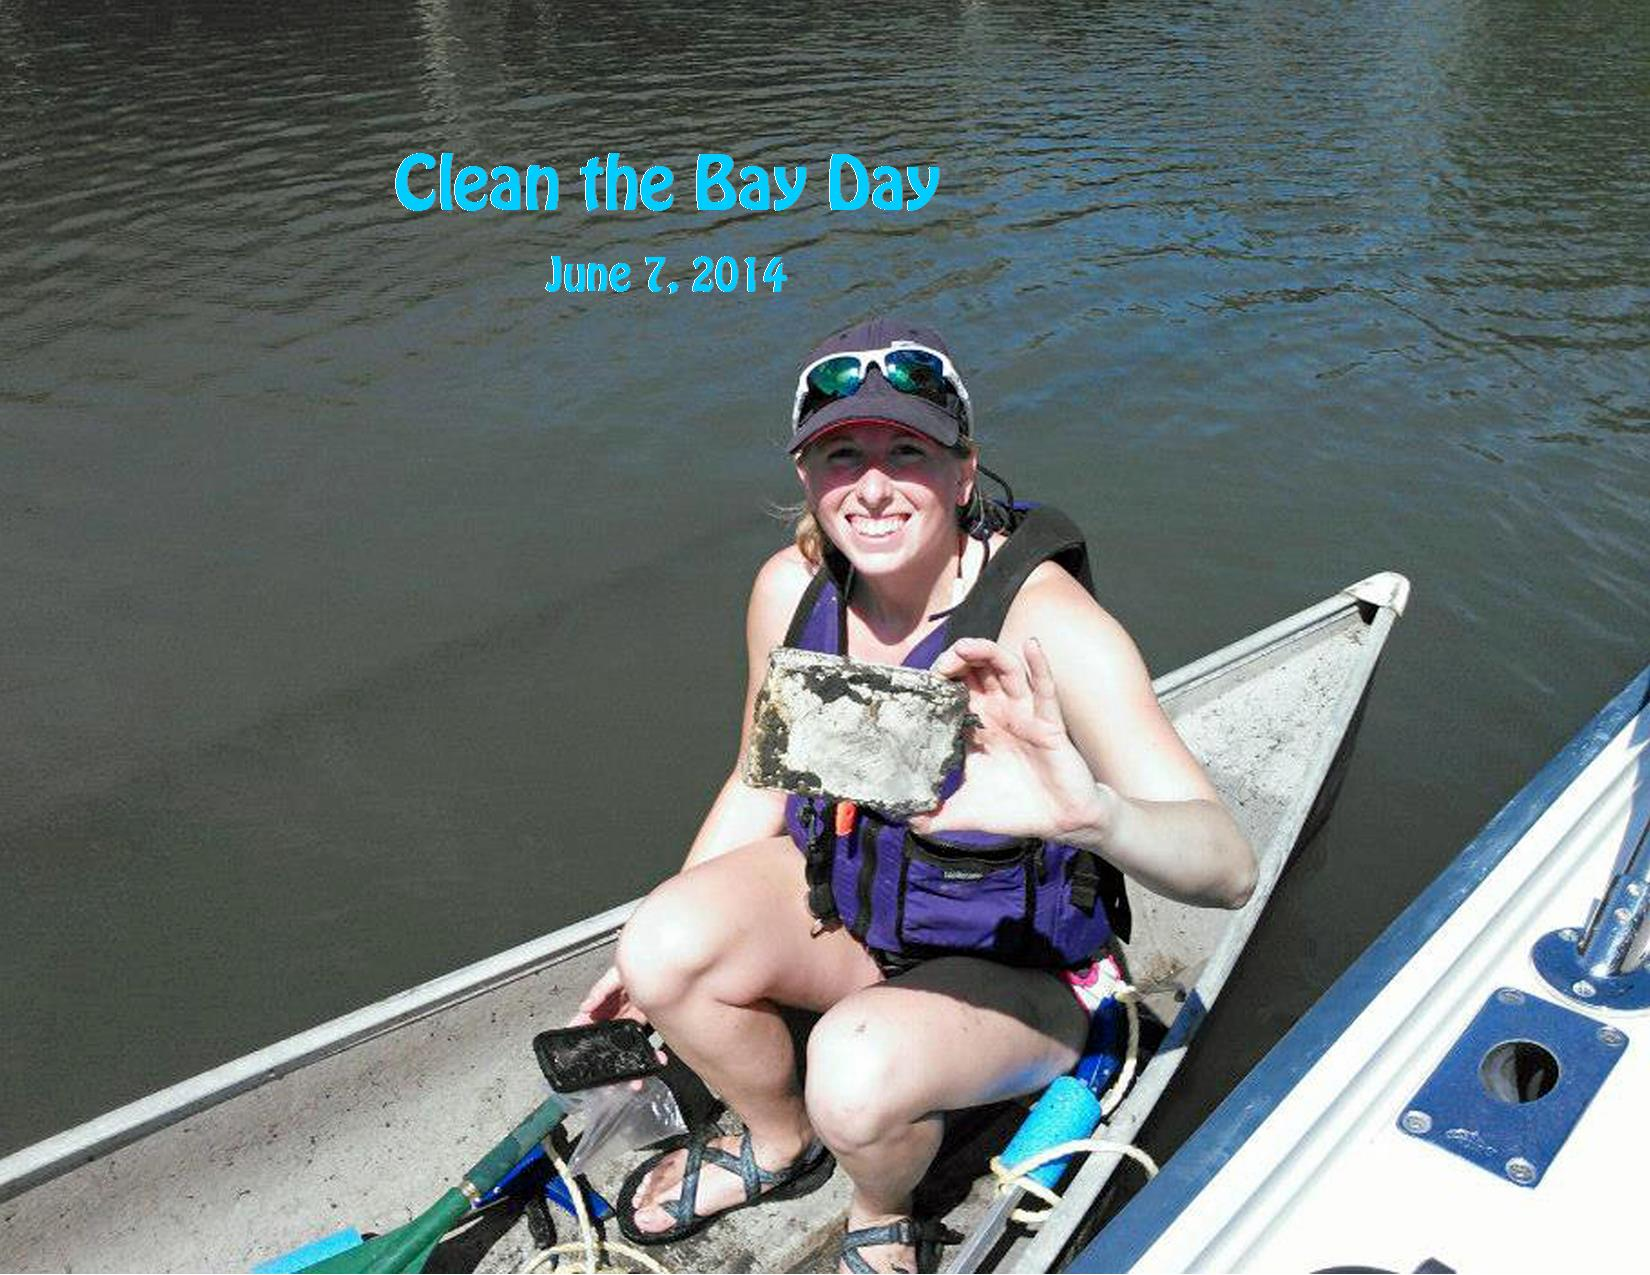 6-7-14 Clean the Bay Day Cassette